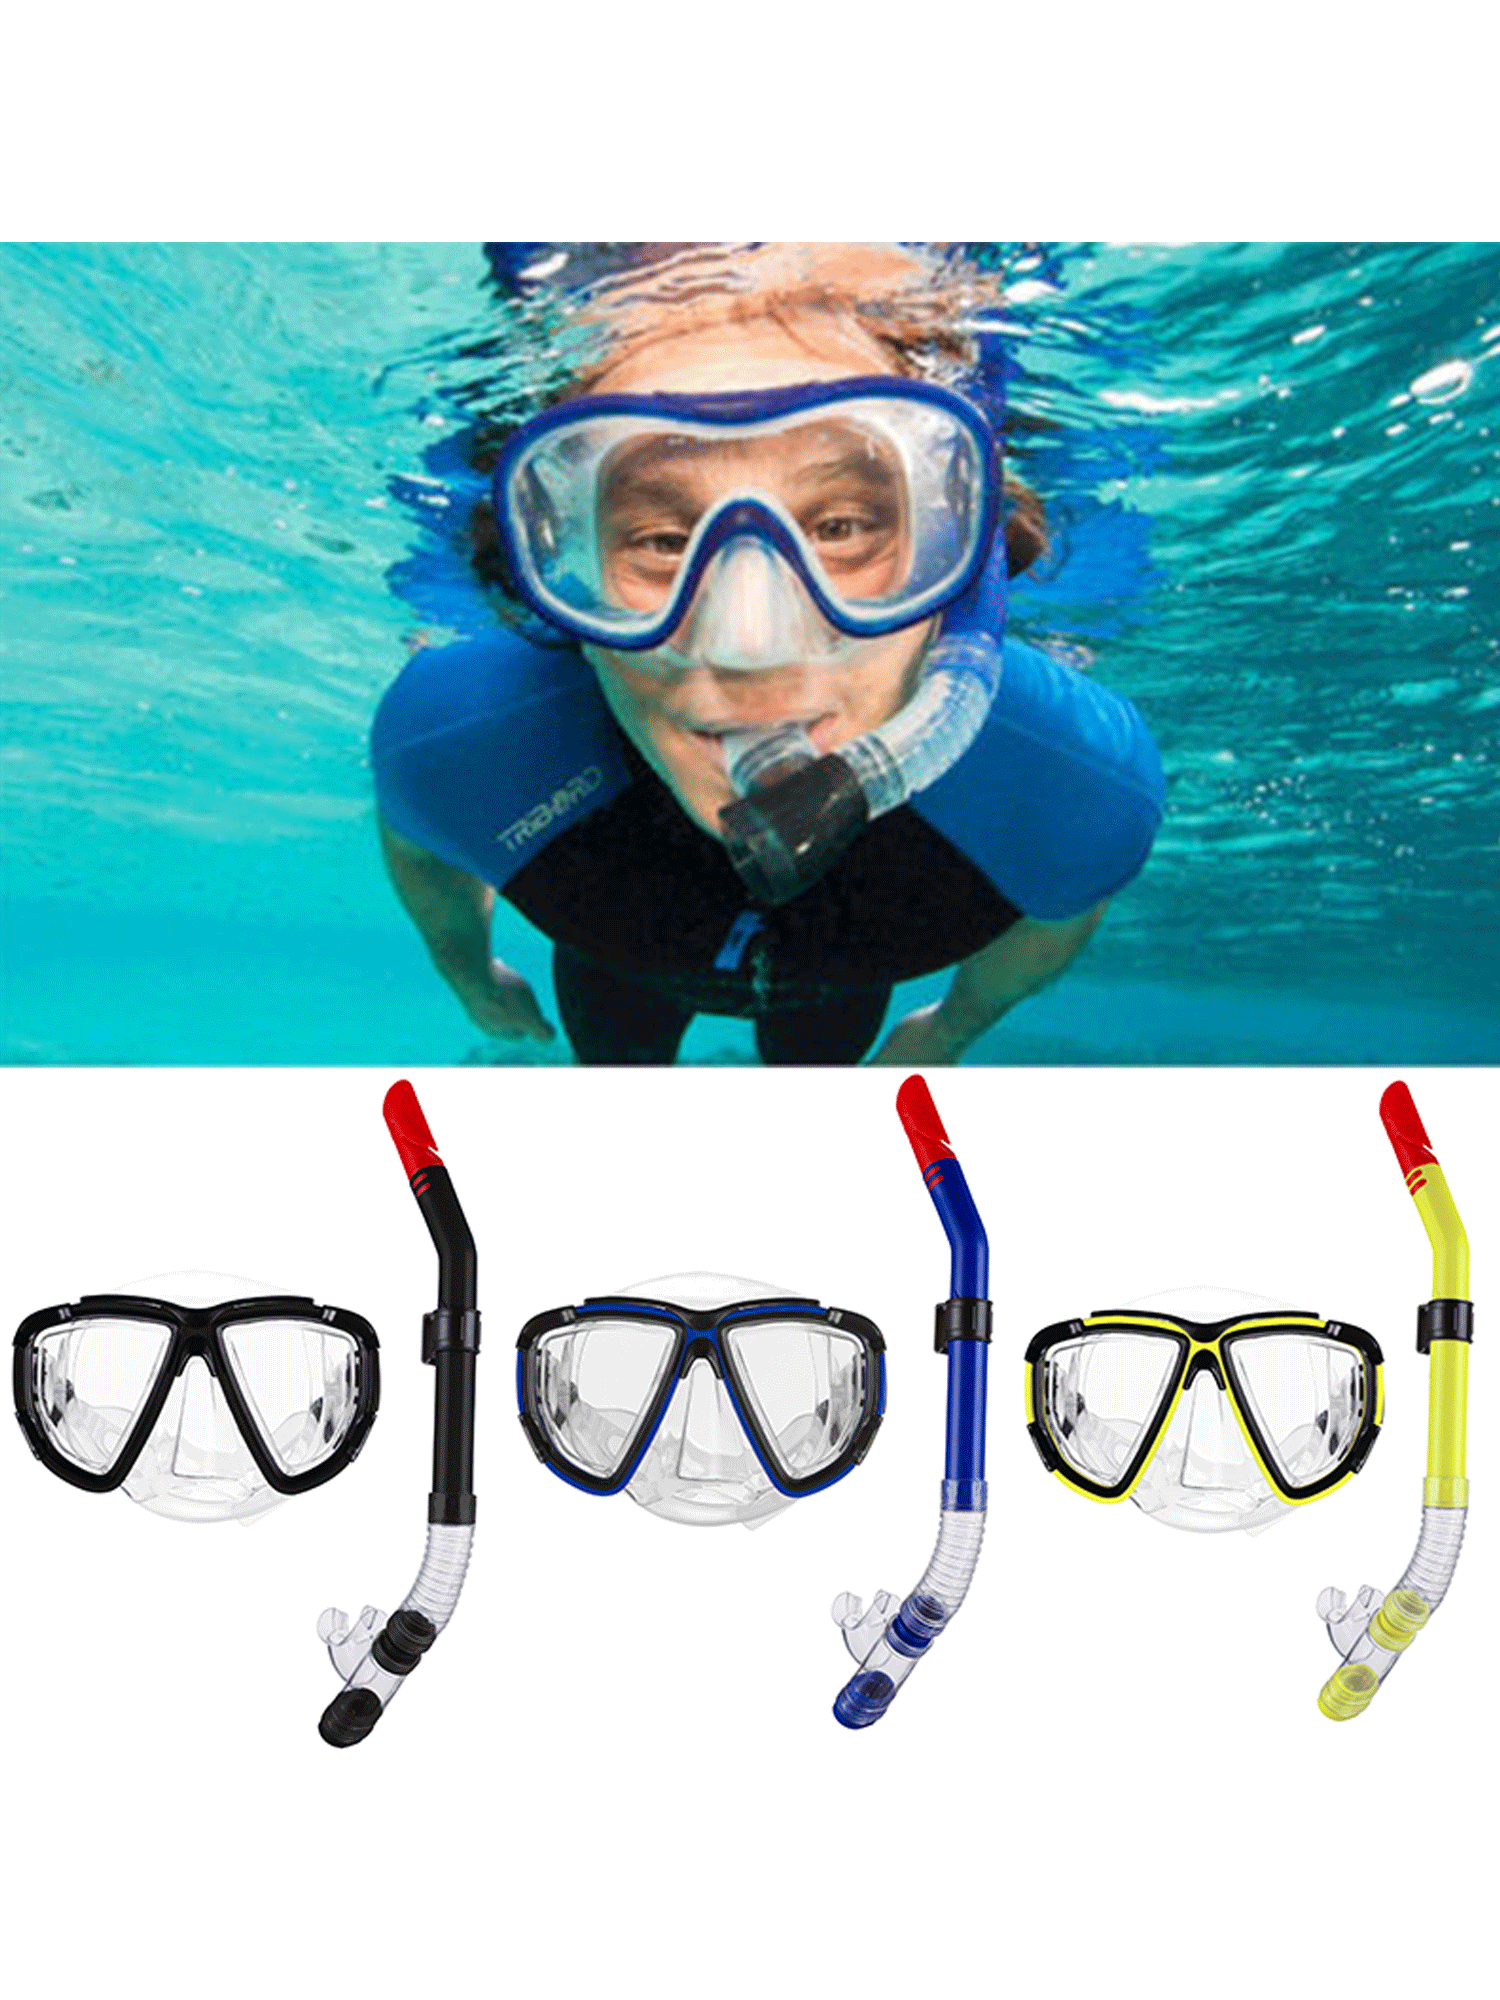 Anyprize Swimming Mask Goggle with Enviromental PVC Mouthpiece for Children, Dry Snorkel Scuba Diving Mask for Kids,... by